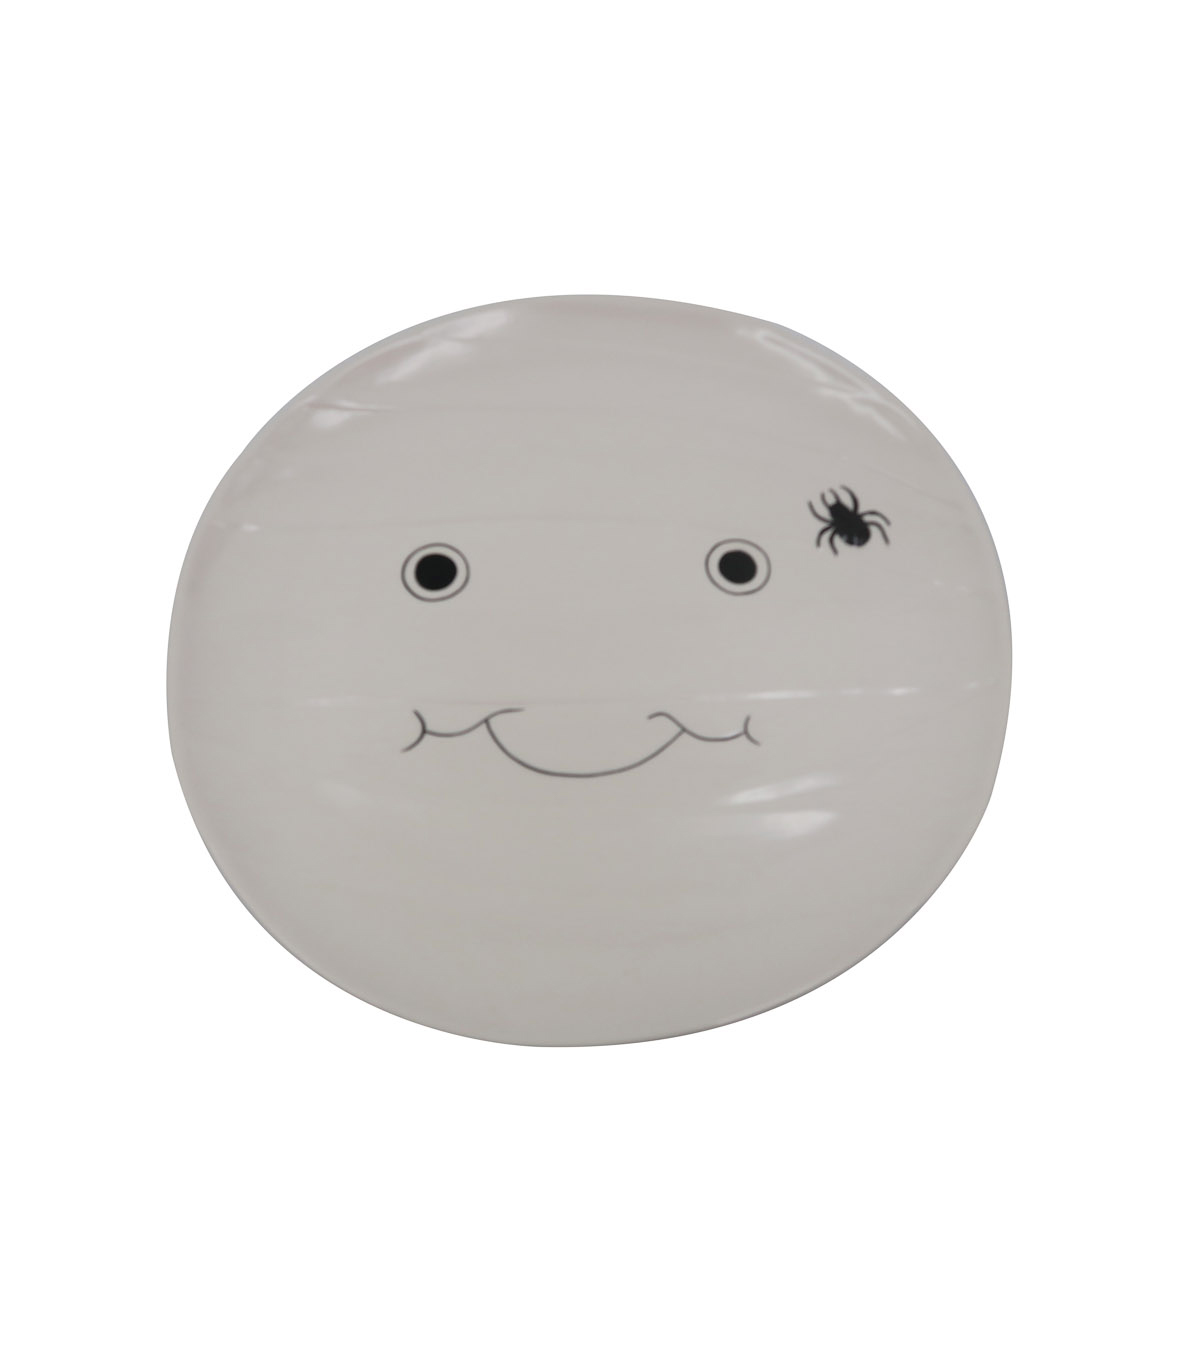 Maker\u0027s Halloween Ceramic Mummy Head Serving Plate